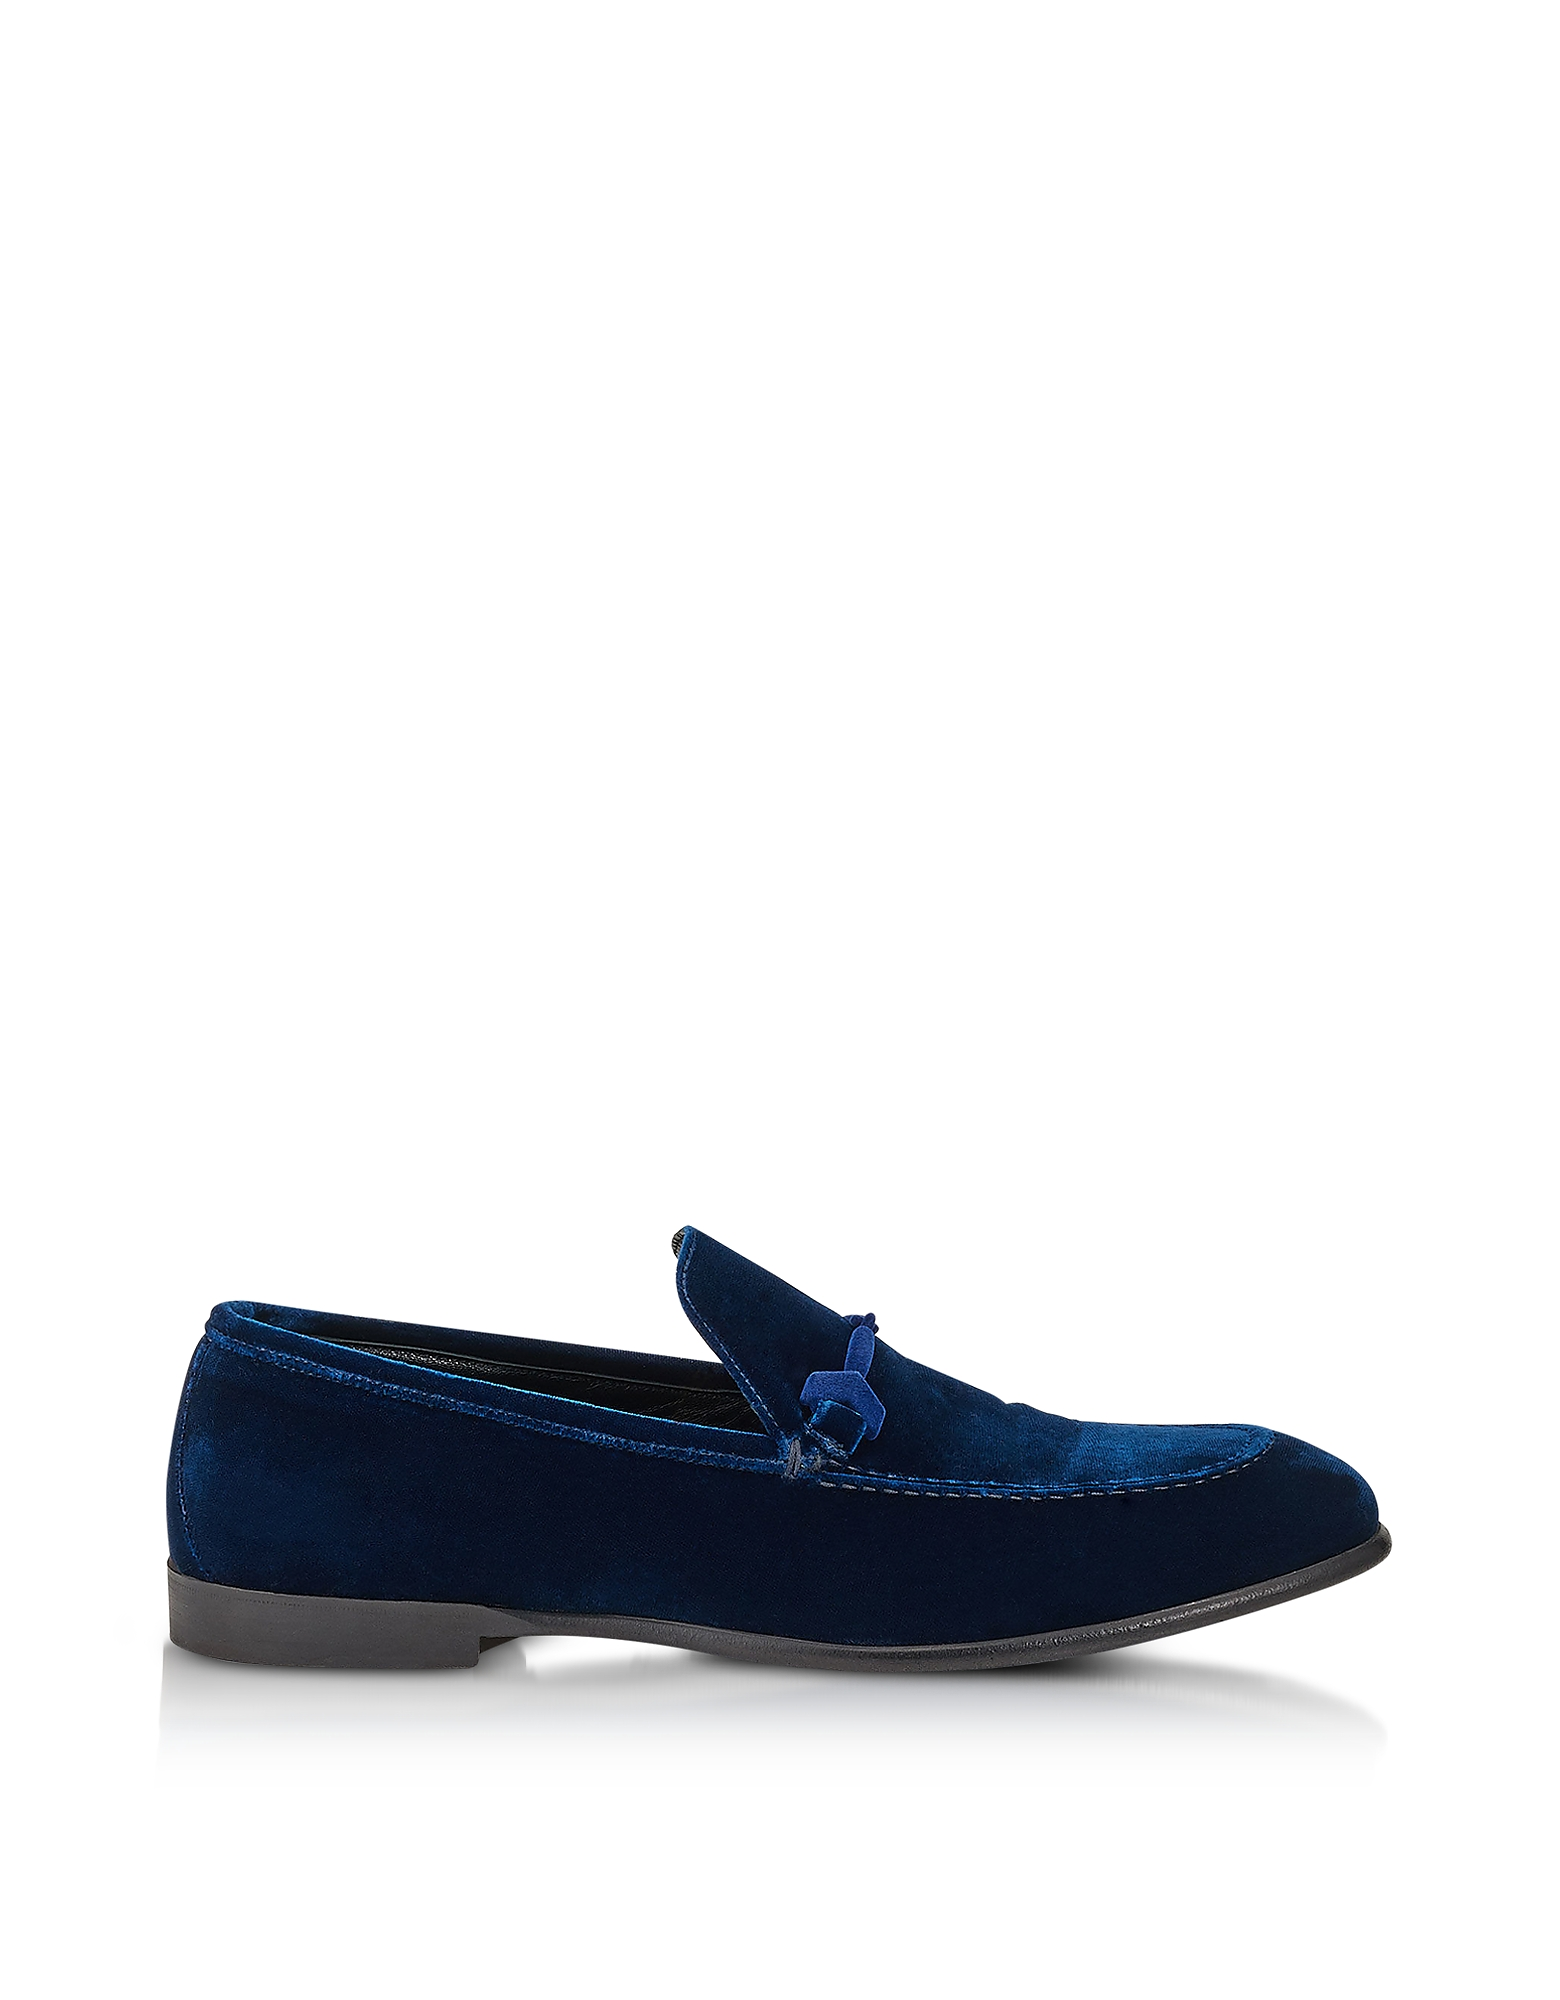 Jimmy Choo Shoes, Marti Navy Blue Velvet Loafer